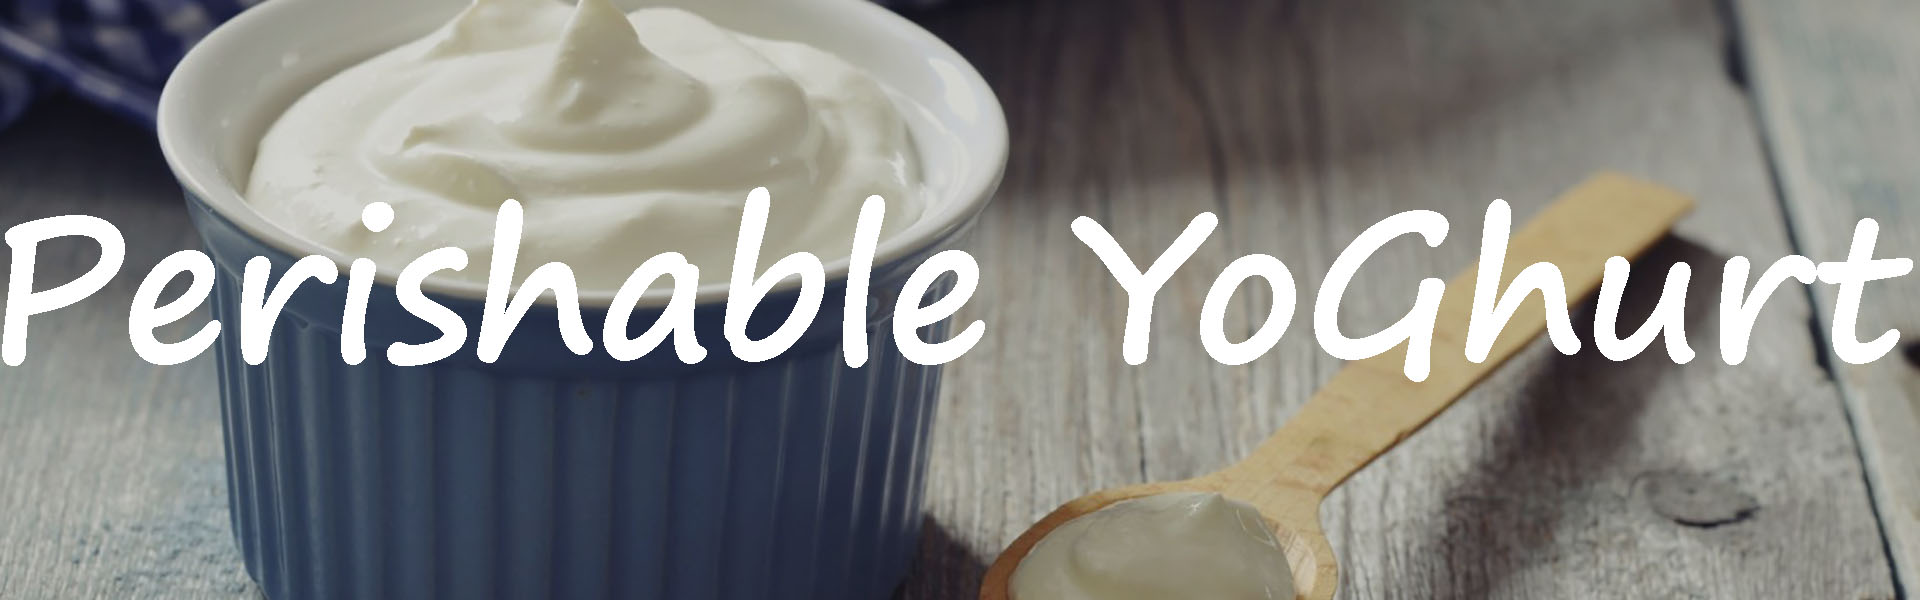 web-ready-perishable-yoghurt-1